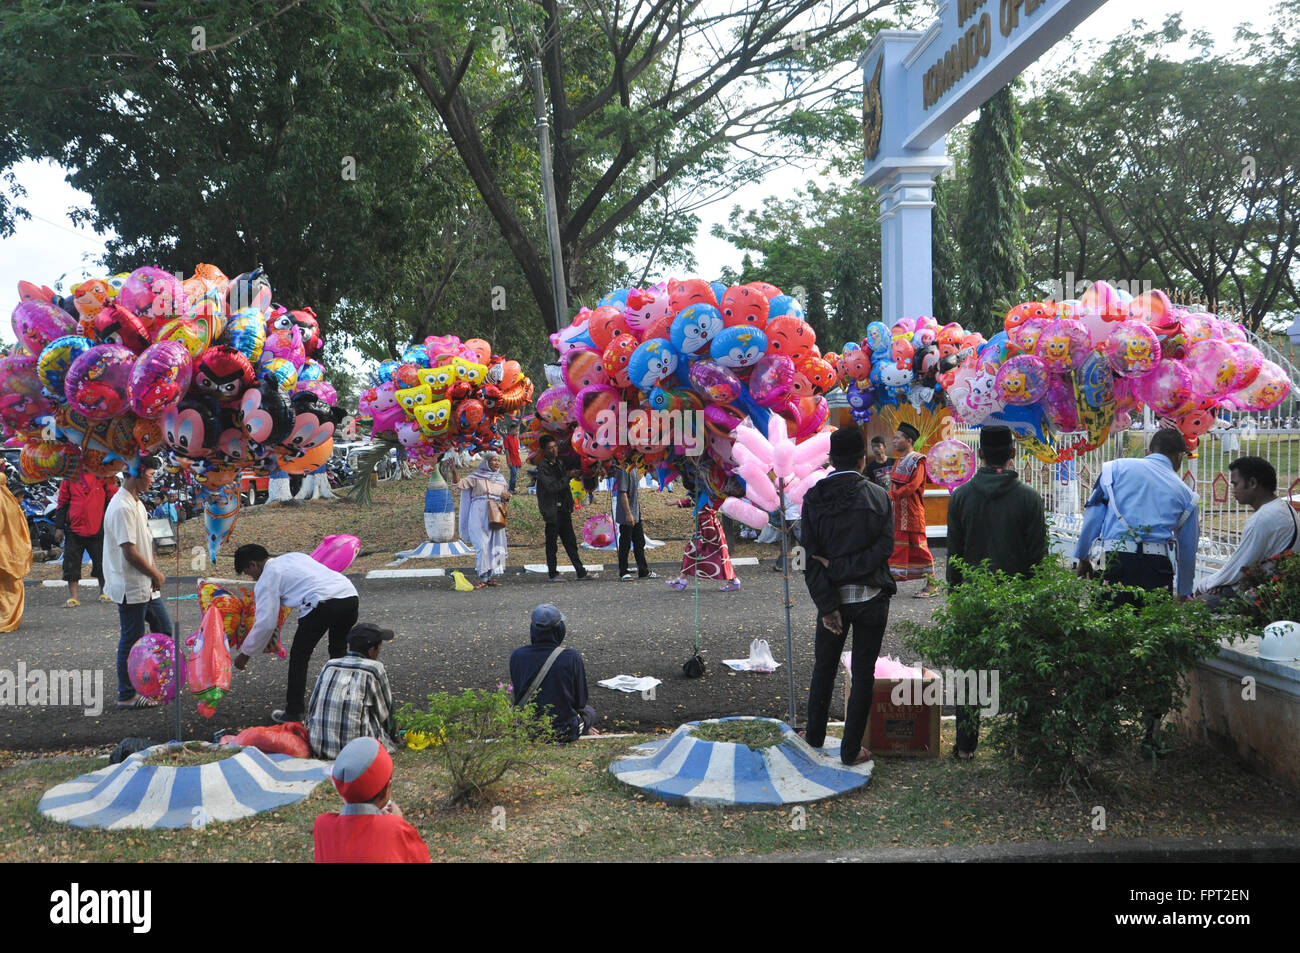 Amazing Indonesian Eid Al-Fitr Decorations - ballon-sellers-were-waiting-outside-air-force-residence-field-in-makassar-FPT2EN  Collection_712862 .jpg